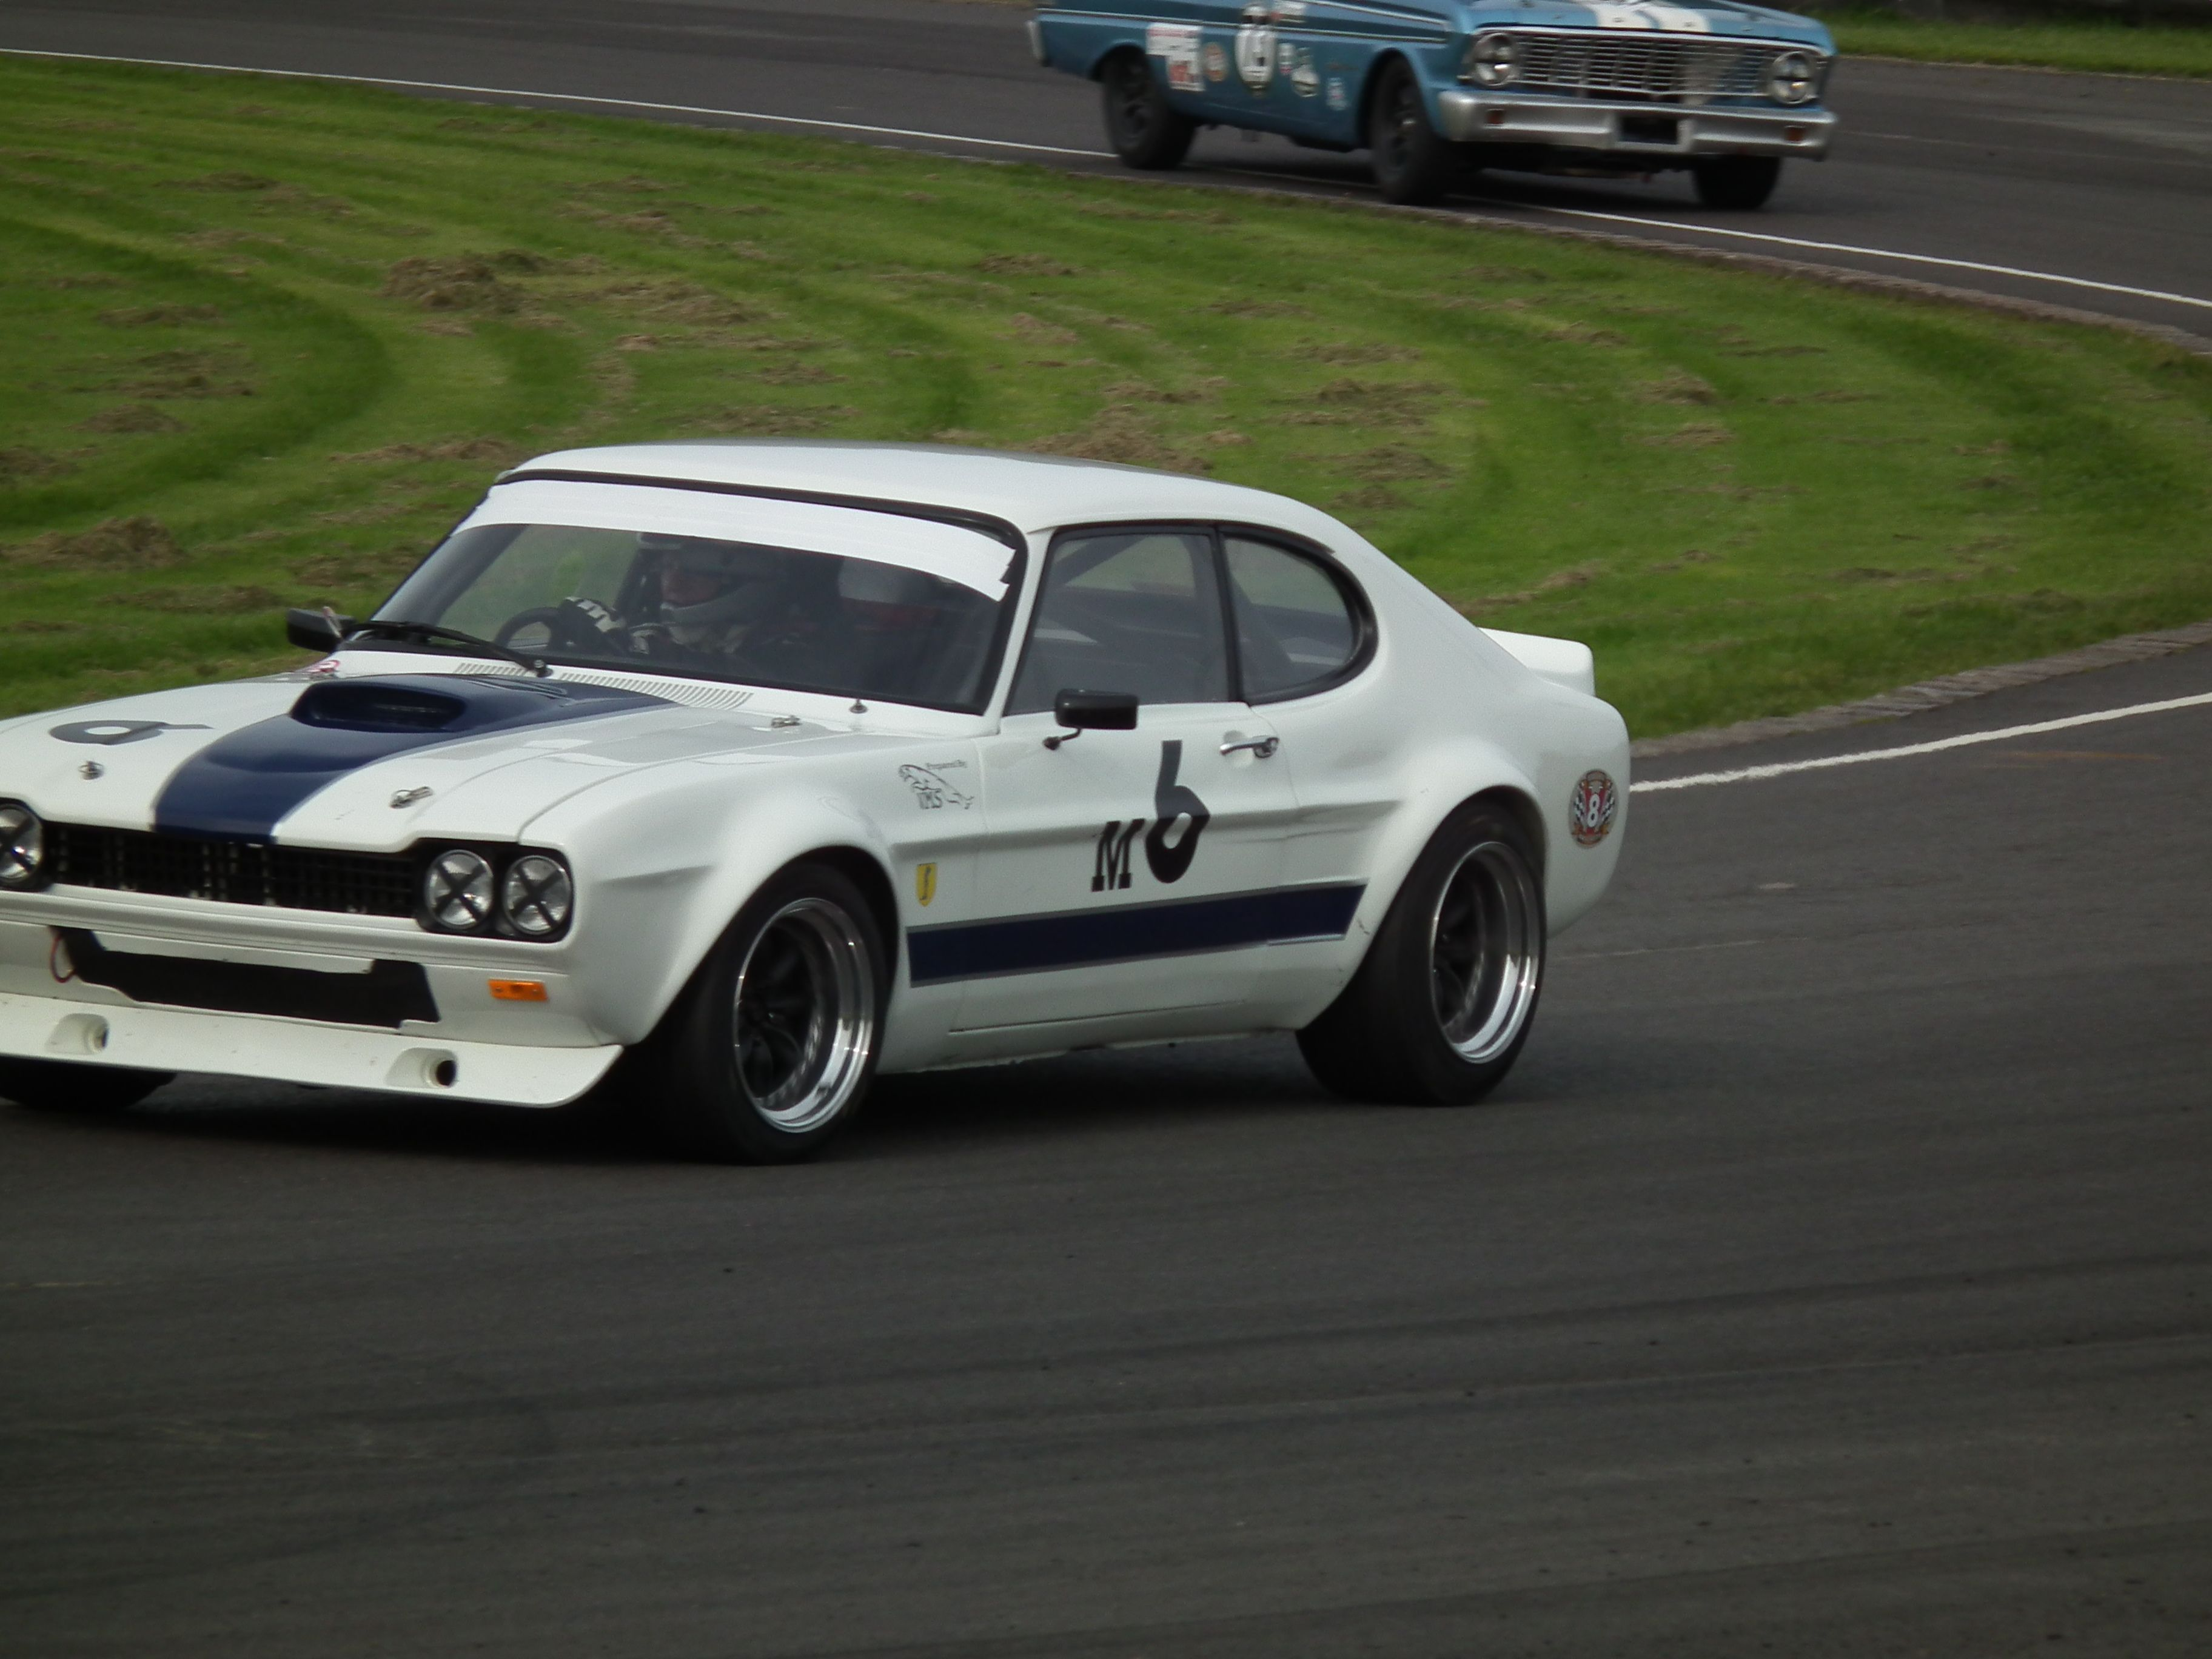 Ford Capri V8 Imported From South Africa Unbeatable Speed